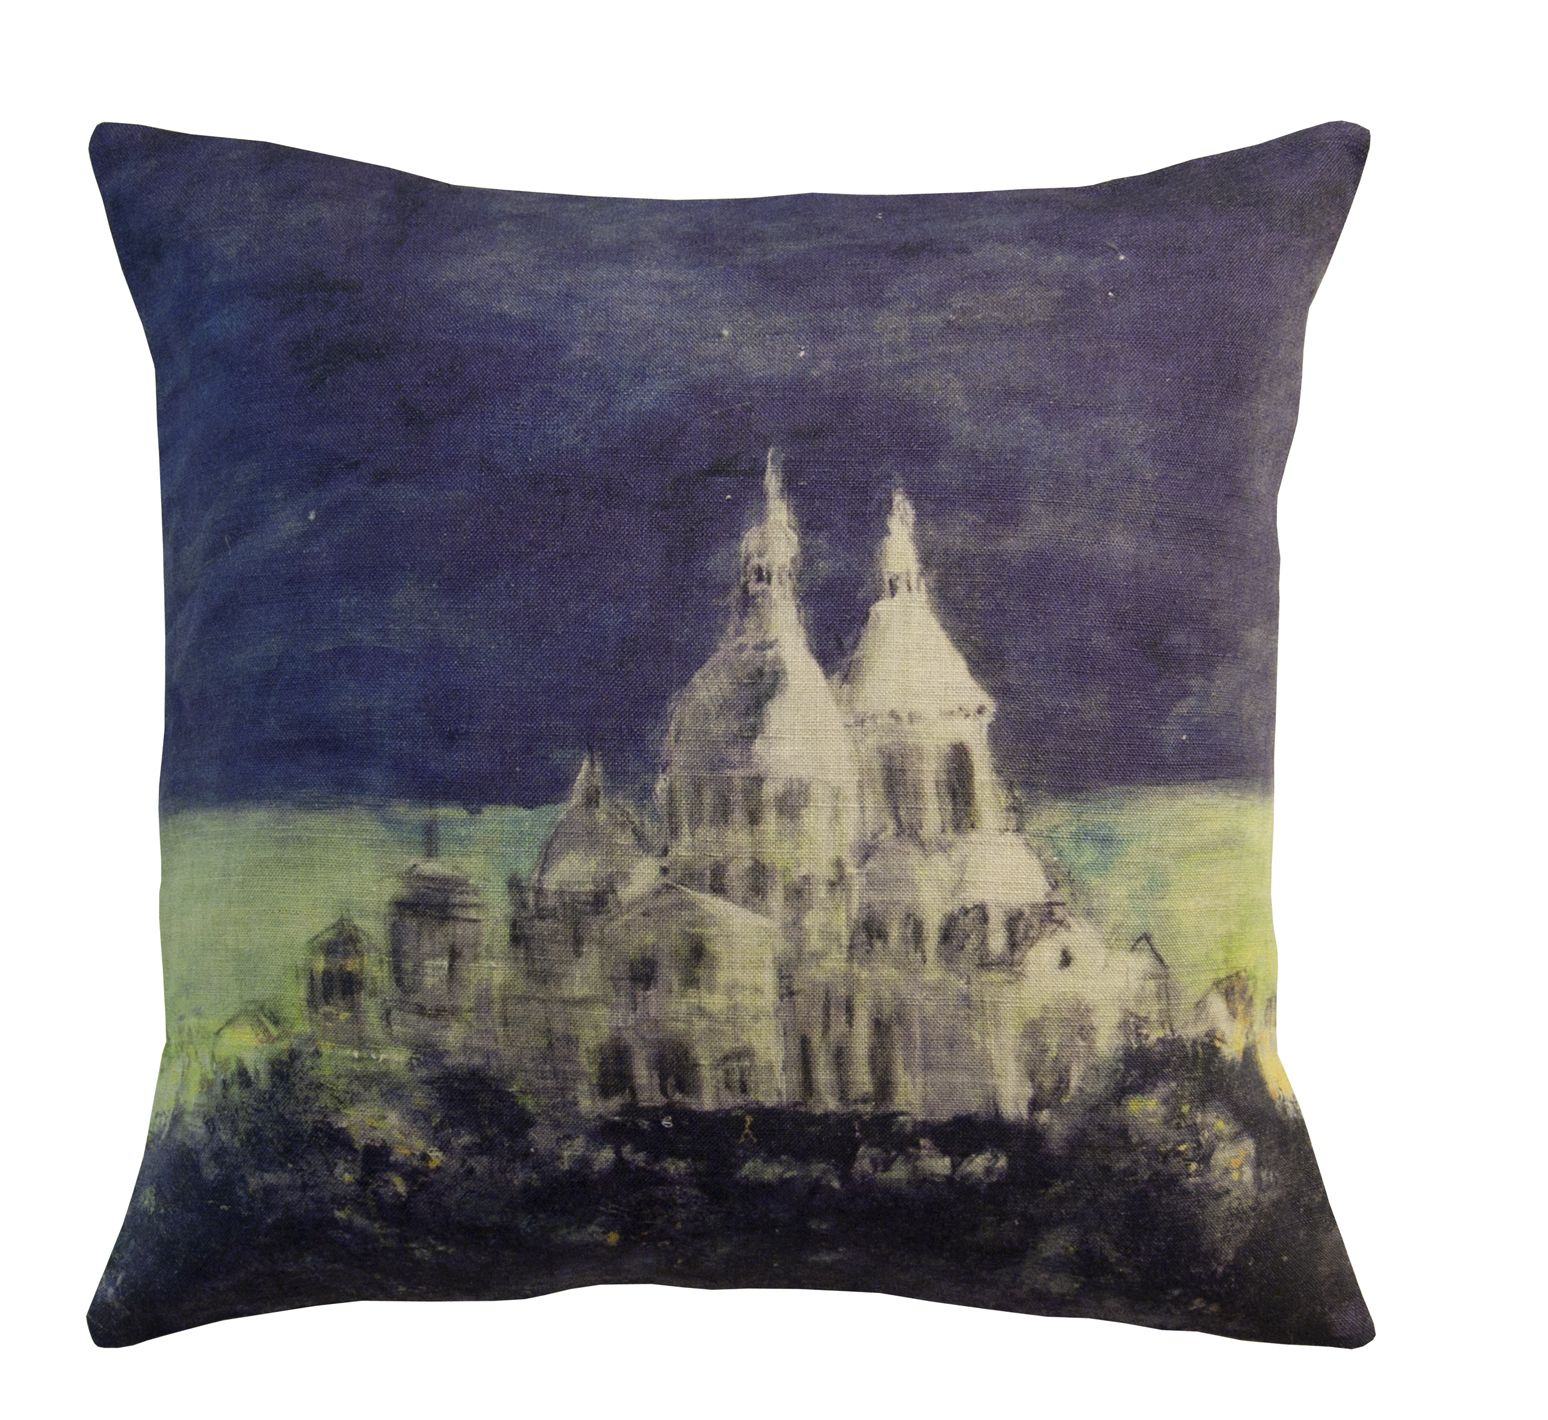 Quot Sacr 233 Coeur Quot Cushion Genevi 232 Ve L 233 Vy Edition Drawing By